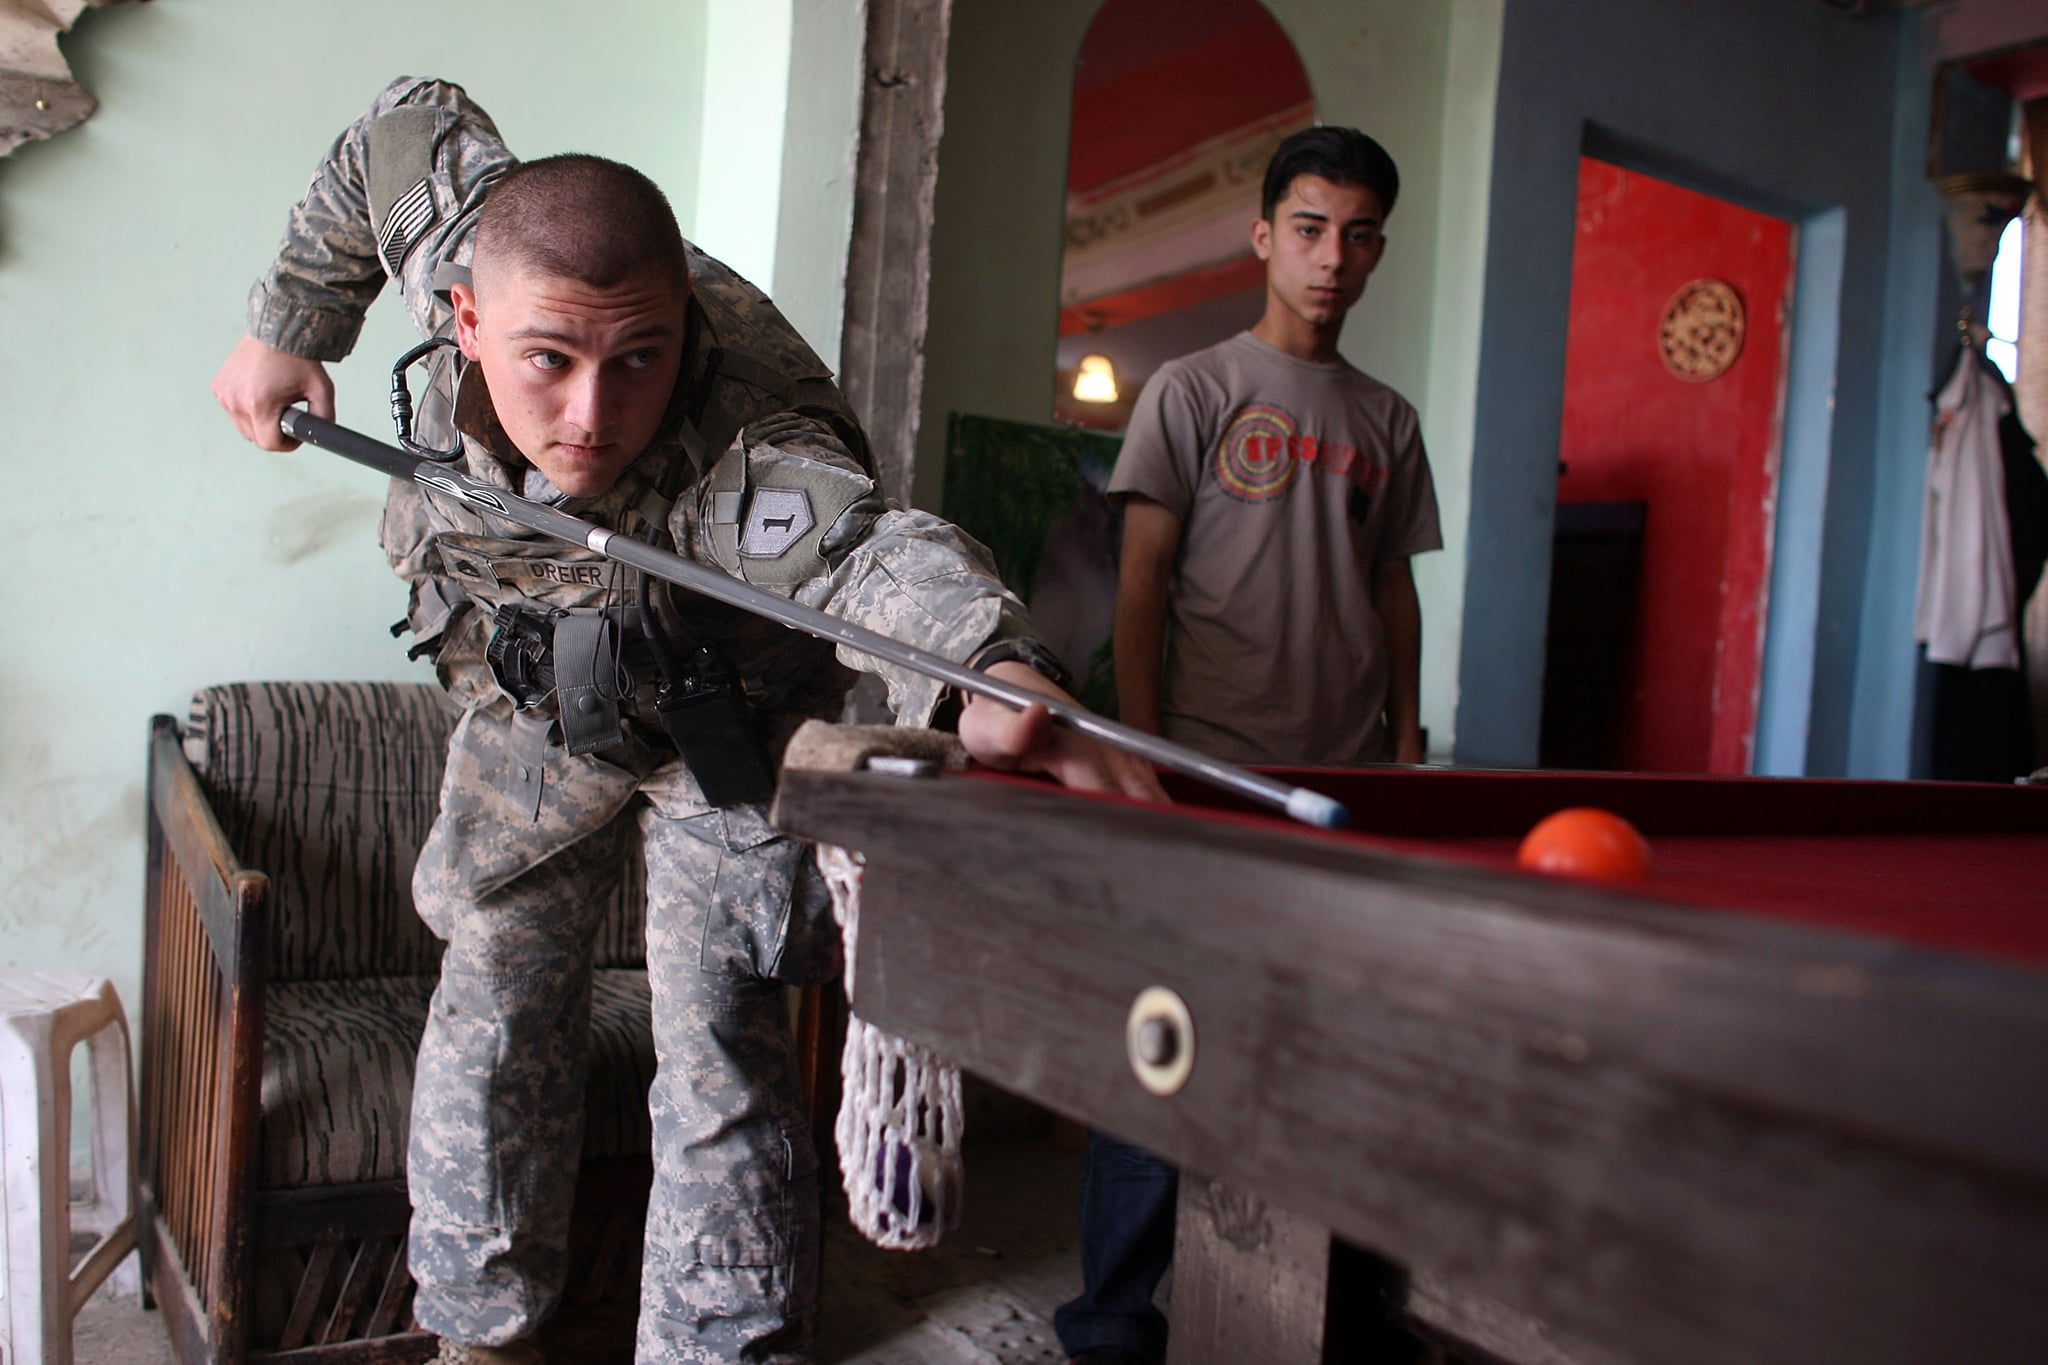 Staff Sgt. Shelby Dreier, from Fawcett, Missouri plays a game of pool at the Doura Guys Cafe while on patrol, March 7, 2008.